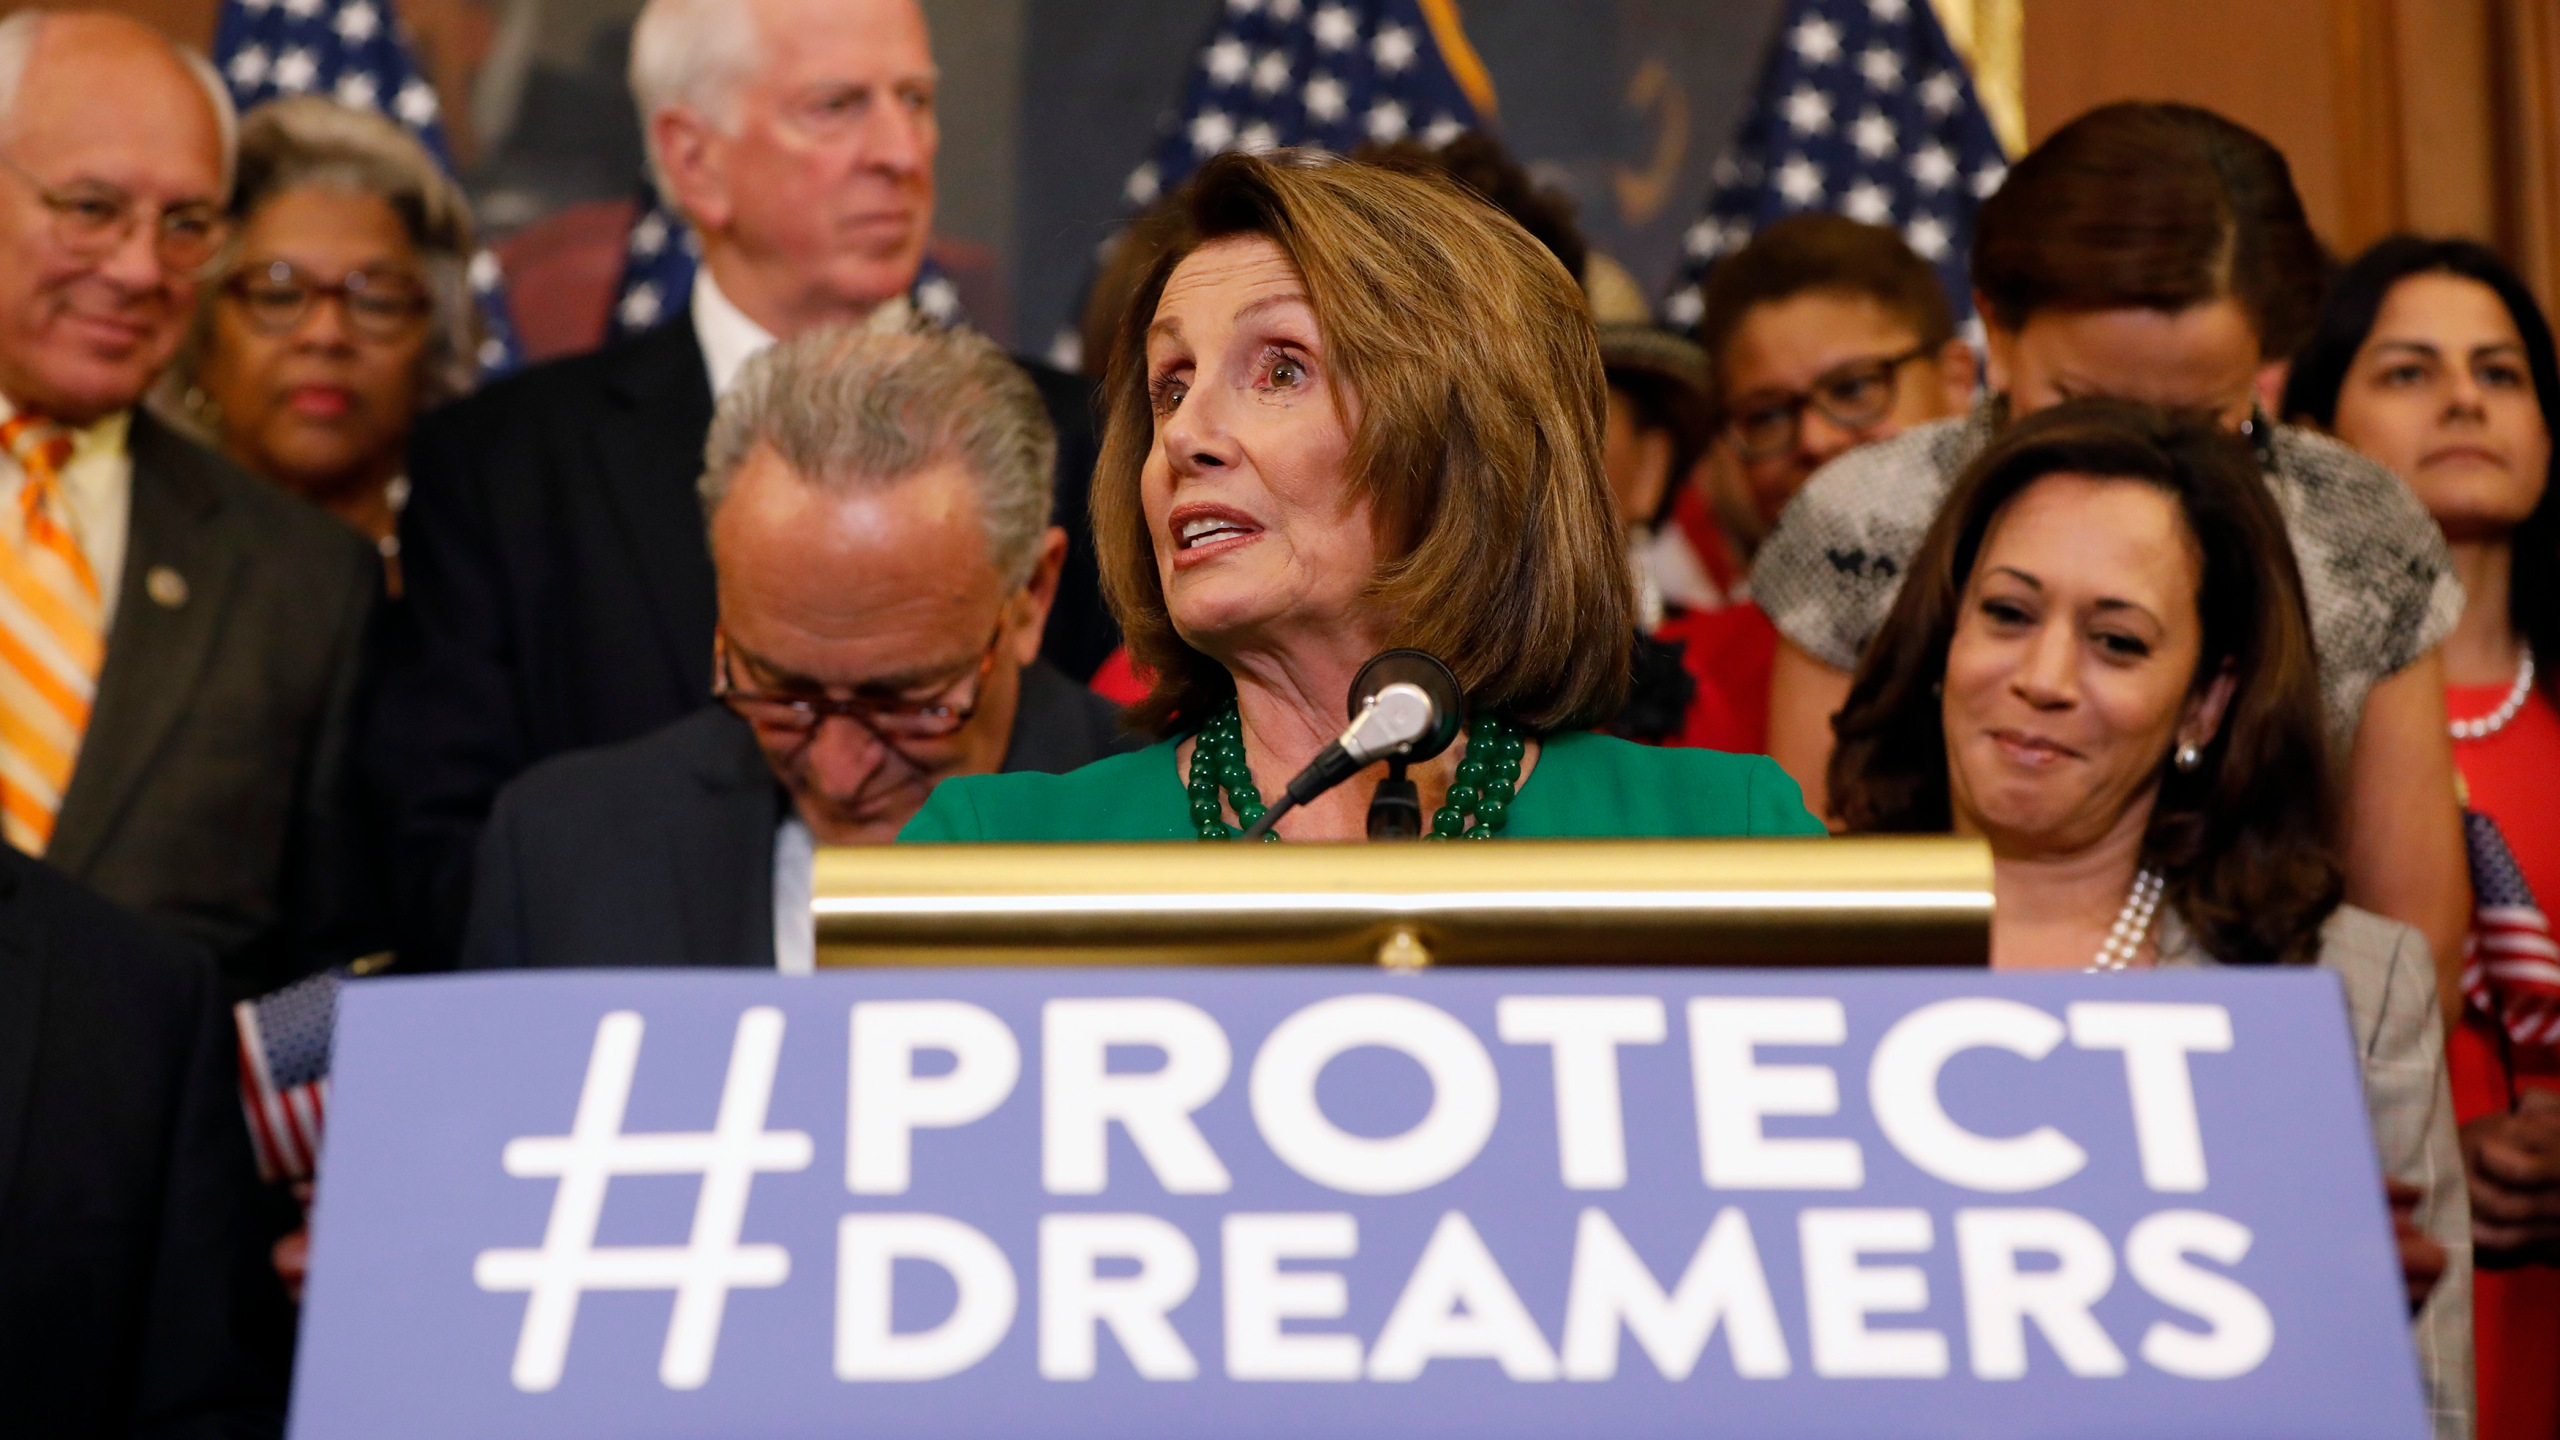 House Minority Leader Nancy Pelosi (D-CA) speaks at a news conference about President Donald Trump's decision to end the Deferred Action for Childhood Arrivals (DACA) program at the U.S. Capitol on Sept. 6, 2017. (Credit: Aaron P. Bernstein / Getty Images)